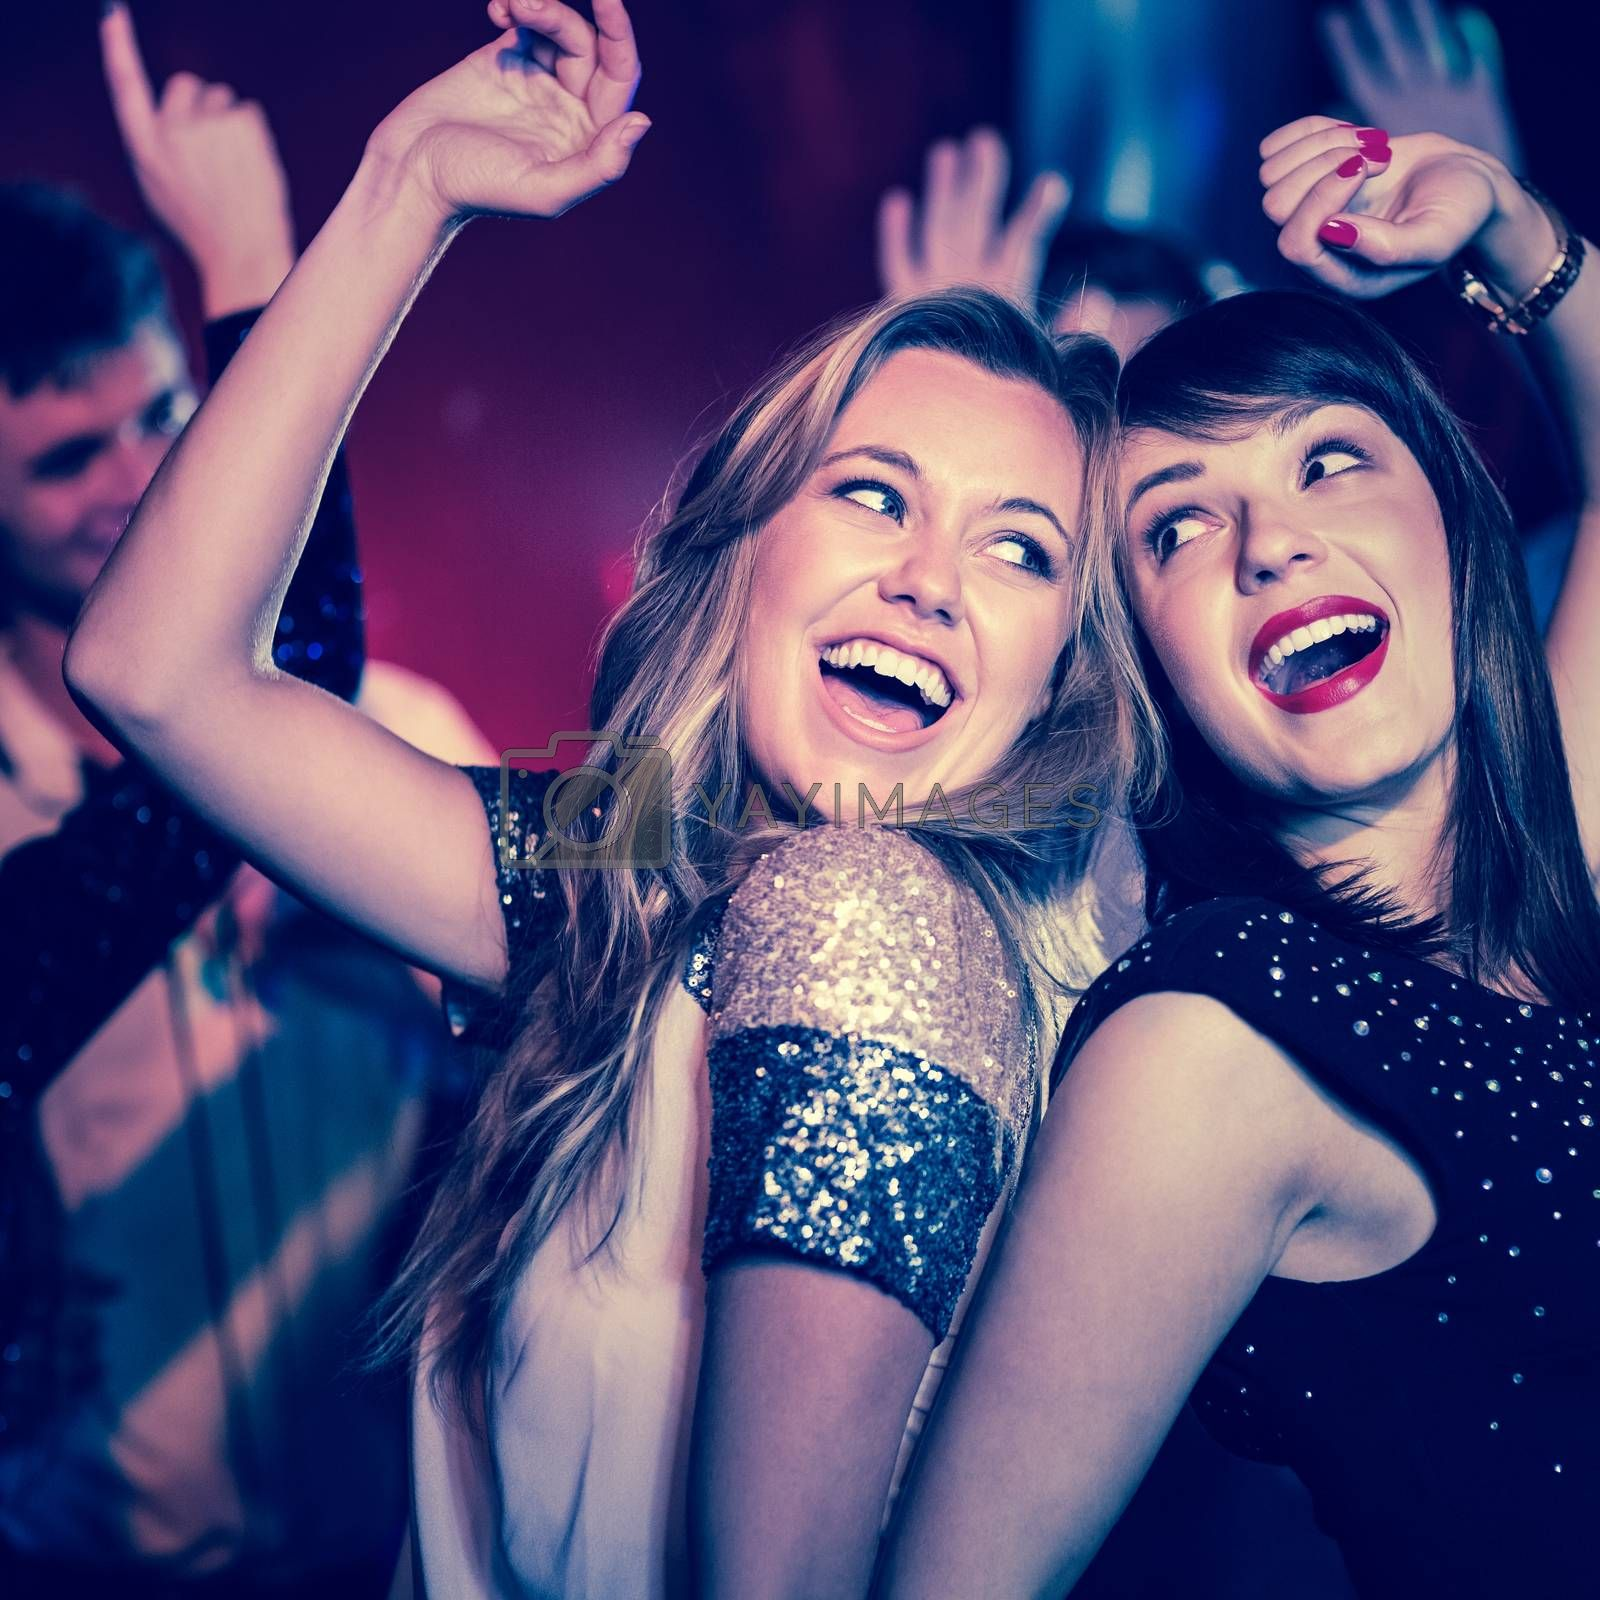 Happy friends having fun together at the nightclub